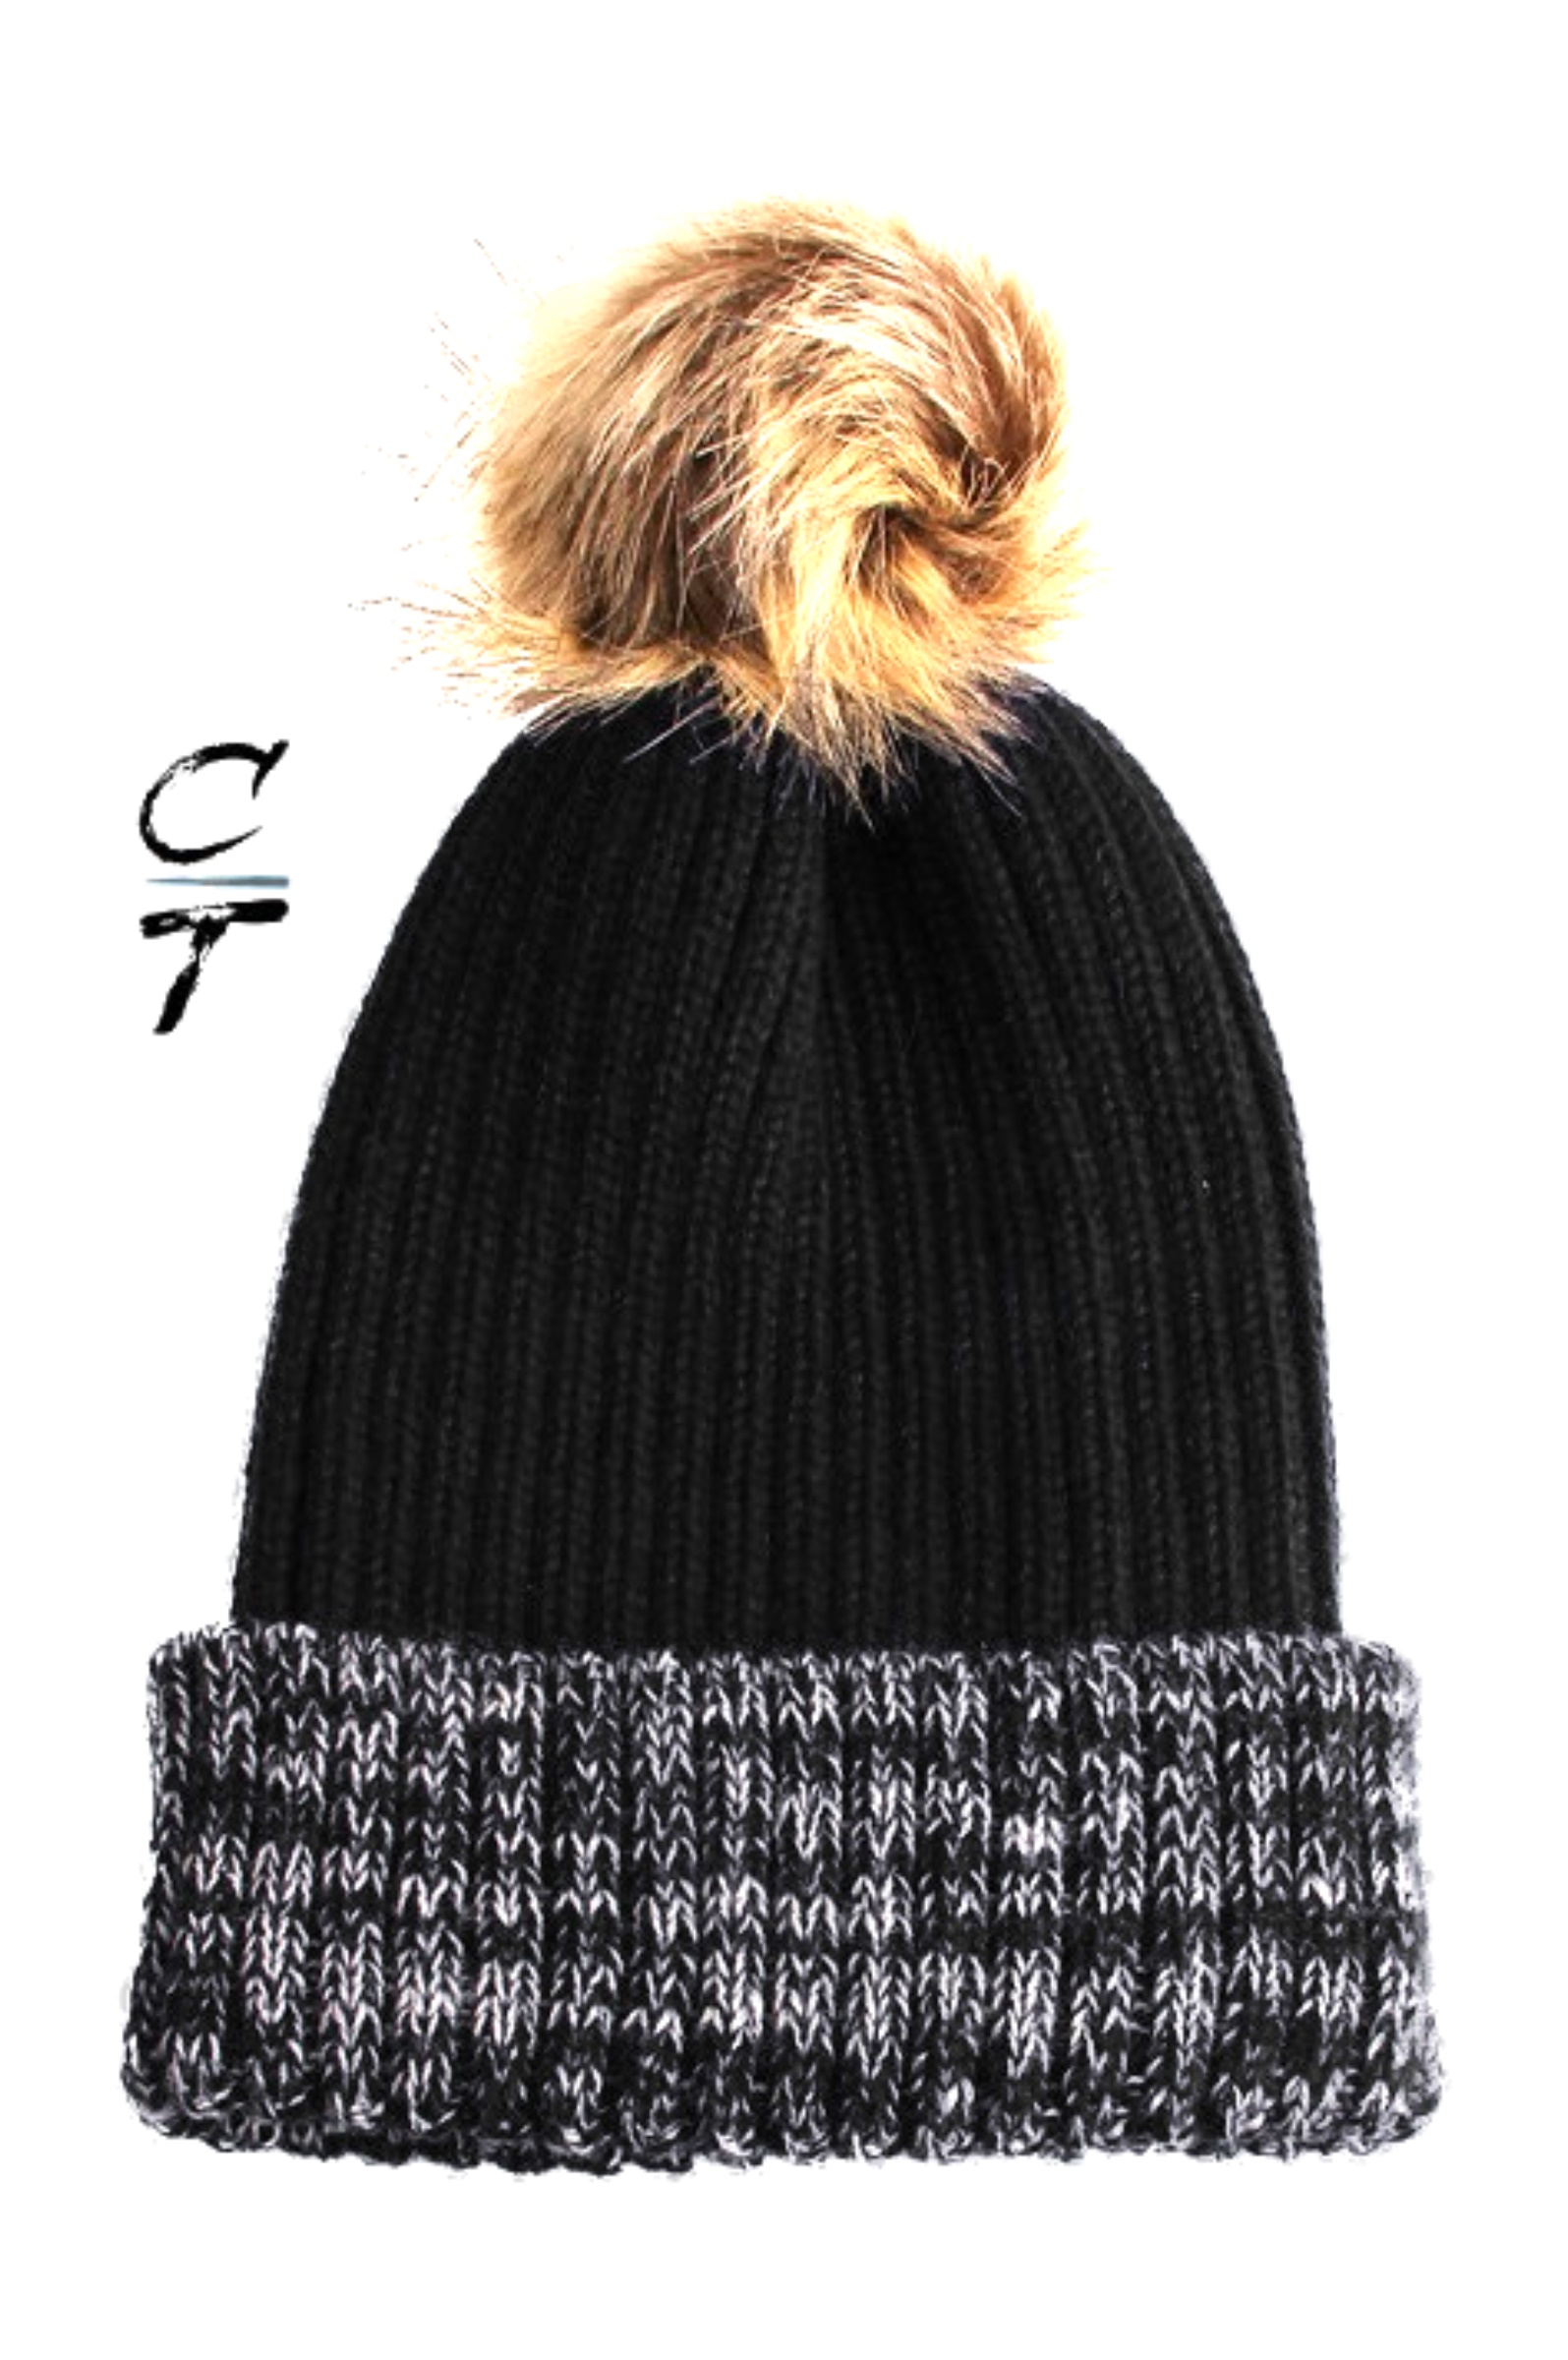 Cozy Time Two Tone Winter Fur Pom Acrylic Knitted Beanie Hats for Extra Warmth and Comfort- Black